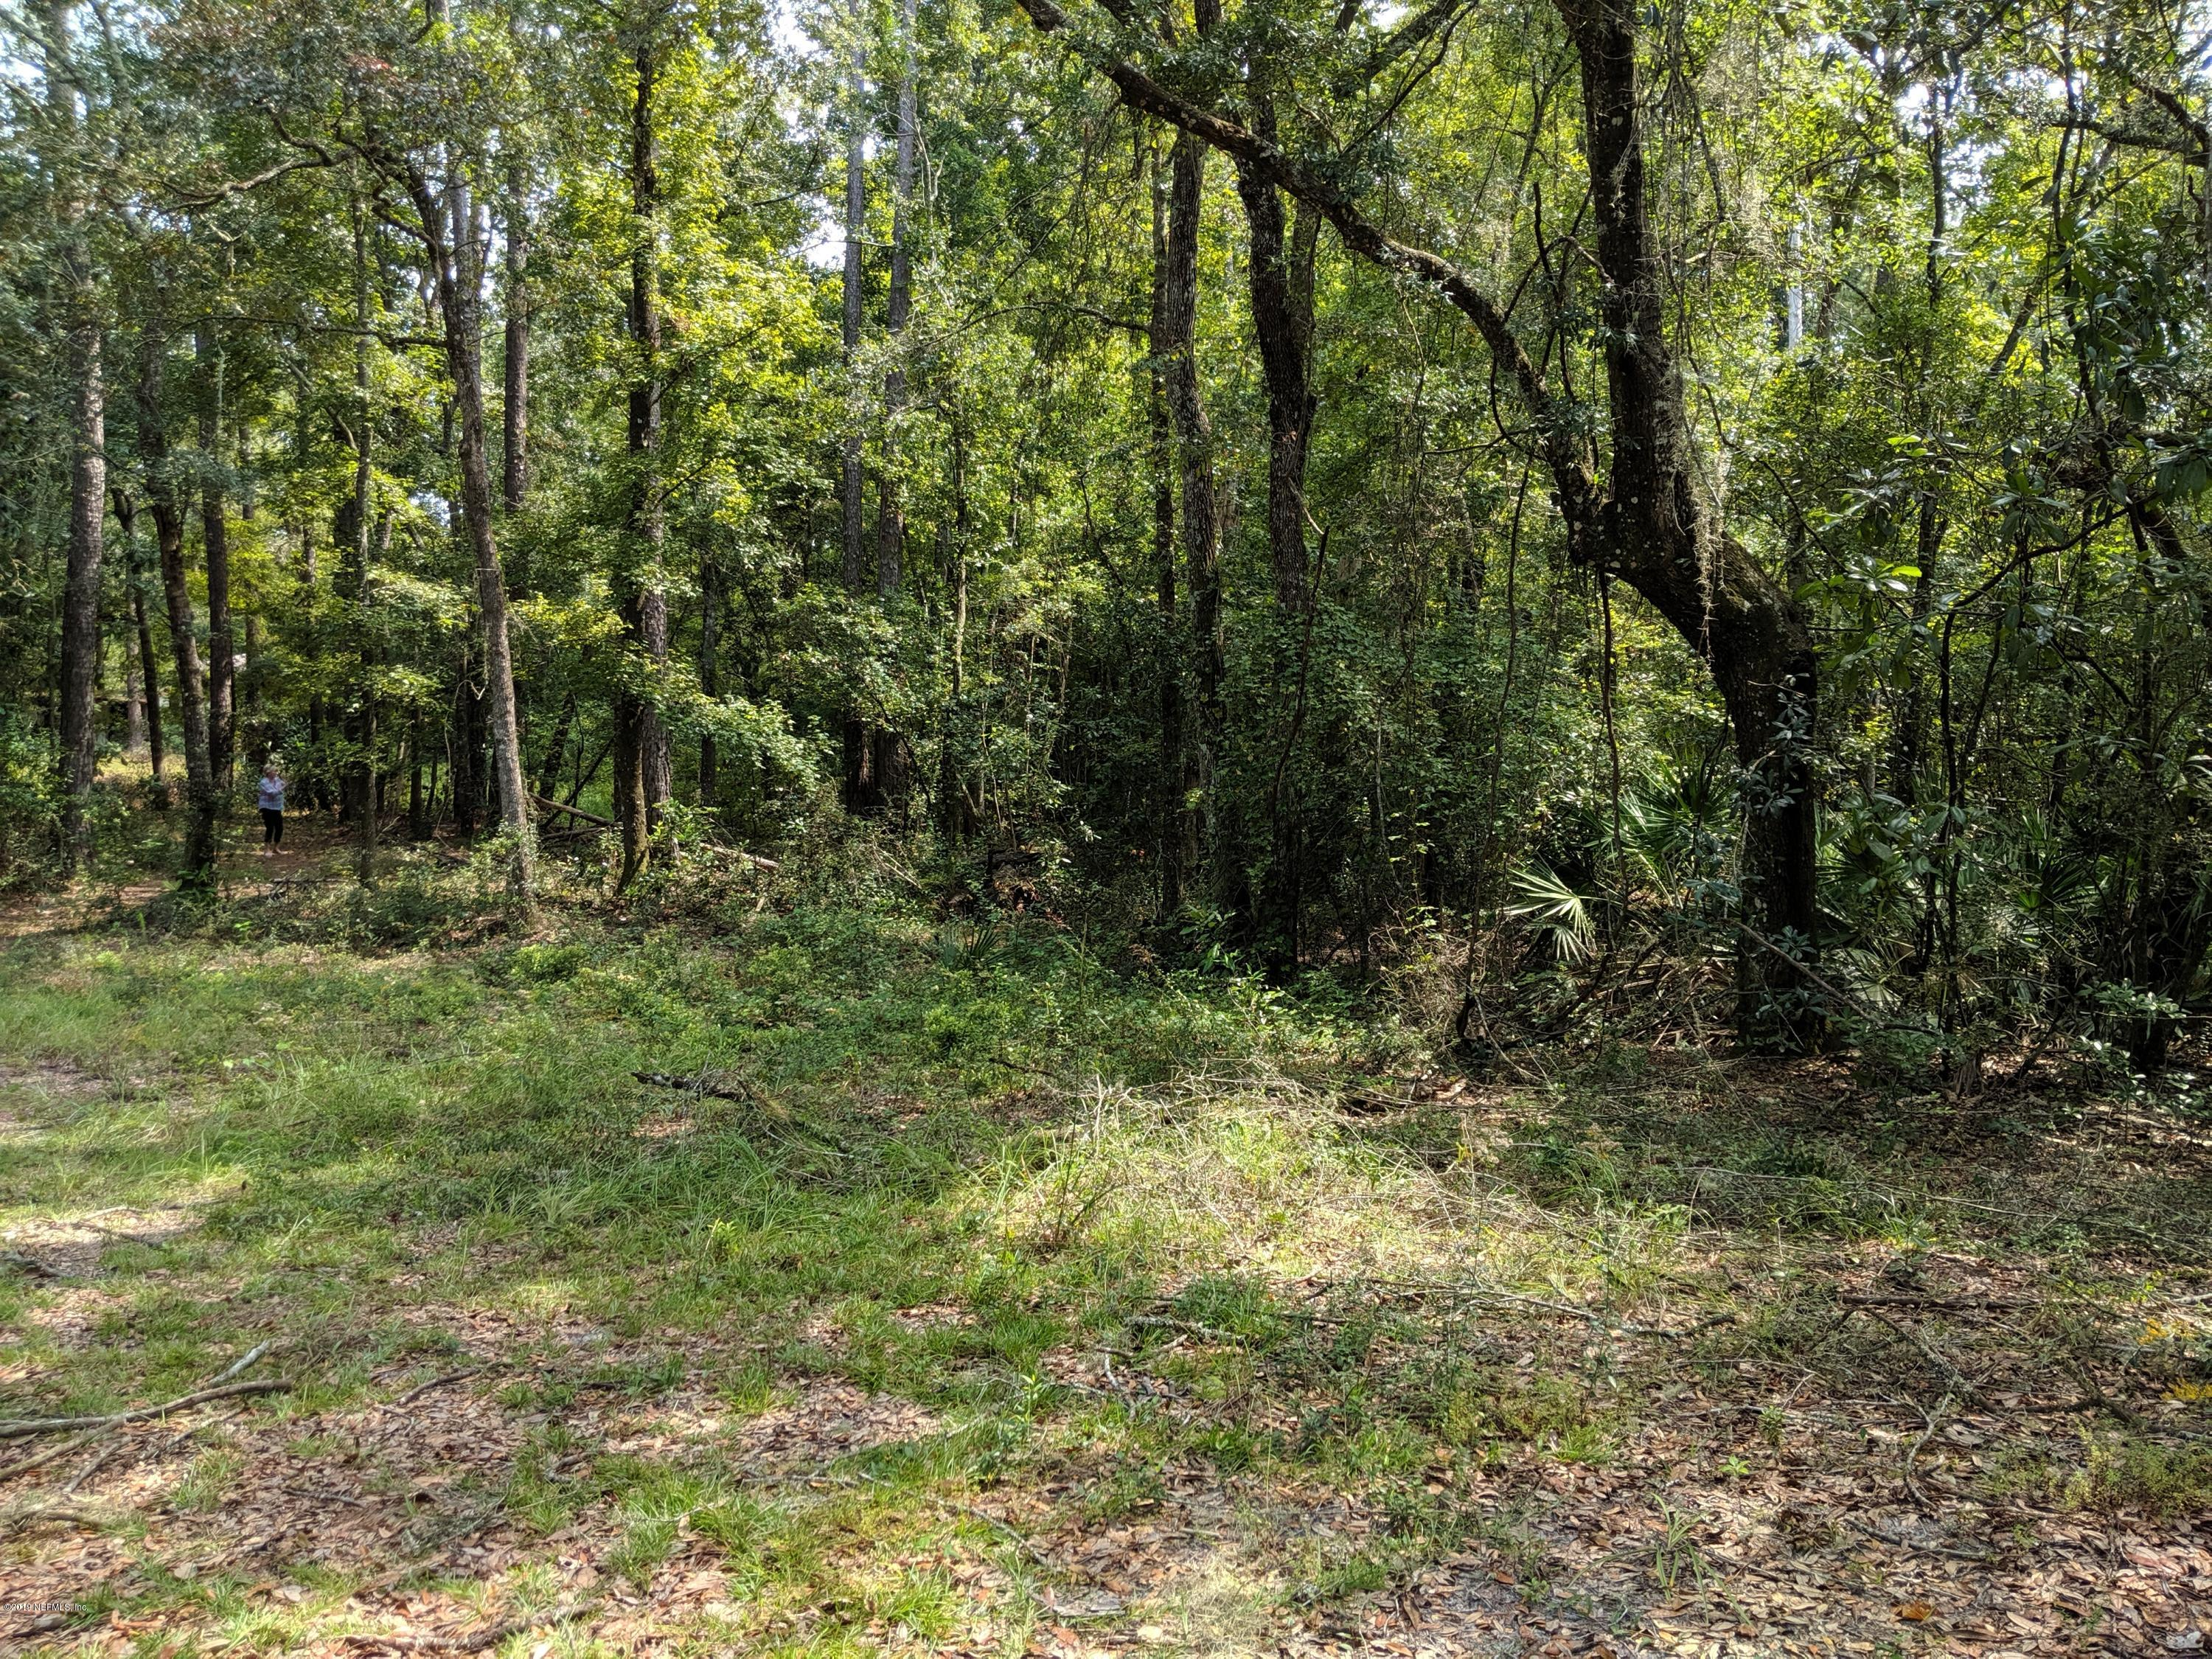 0 SAUNDERS, MIDDLEBURG, FLORIDA 32068, ,Vacant land,For sale,SAUNDERS,1015626